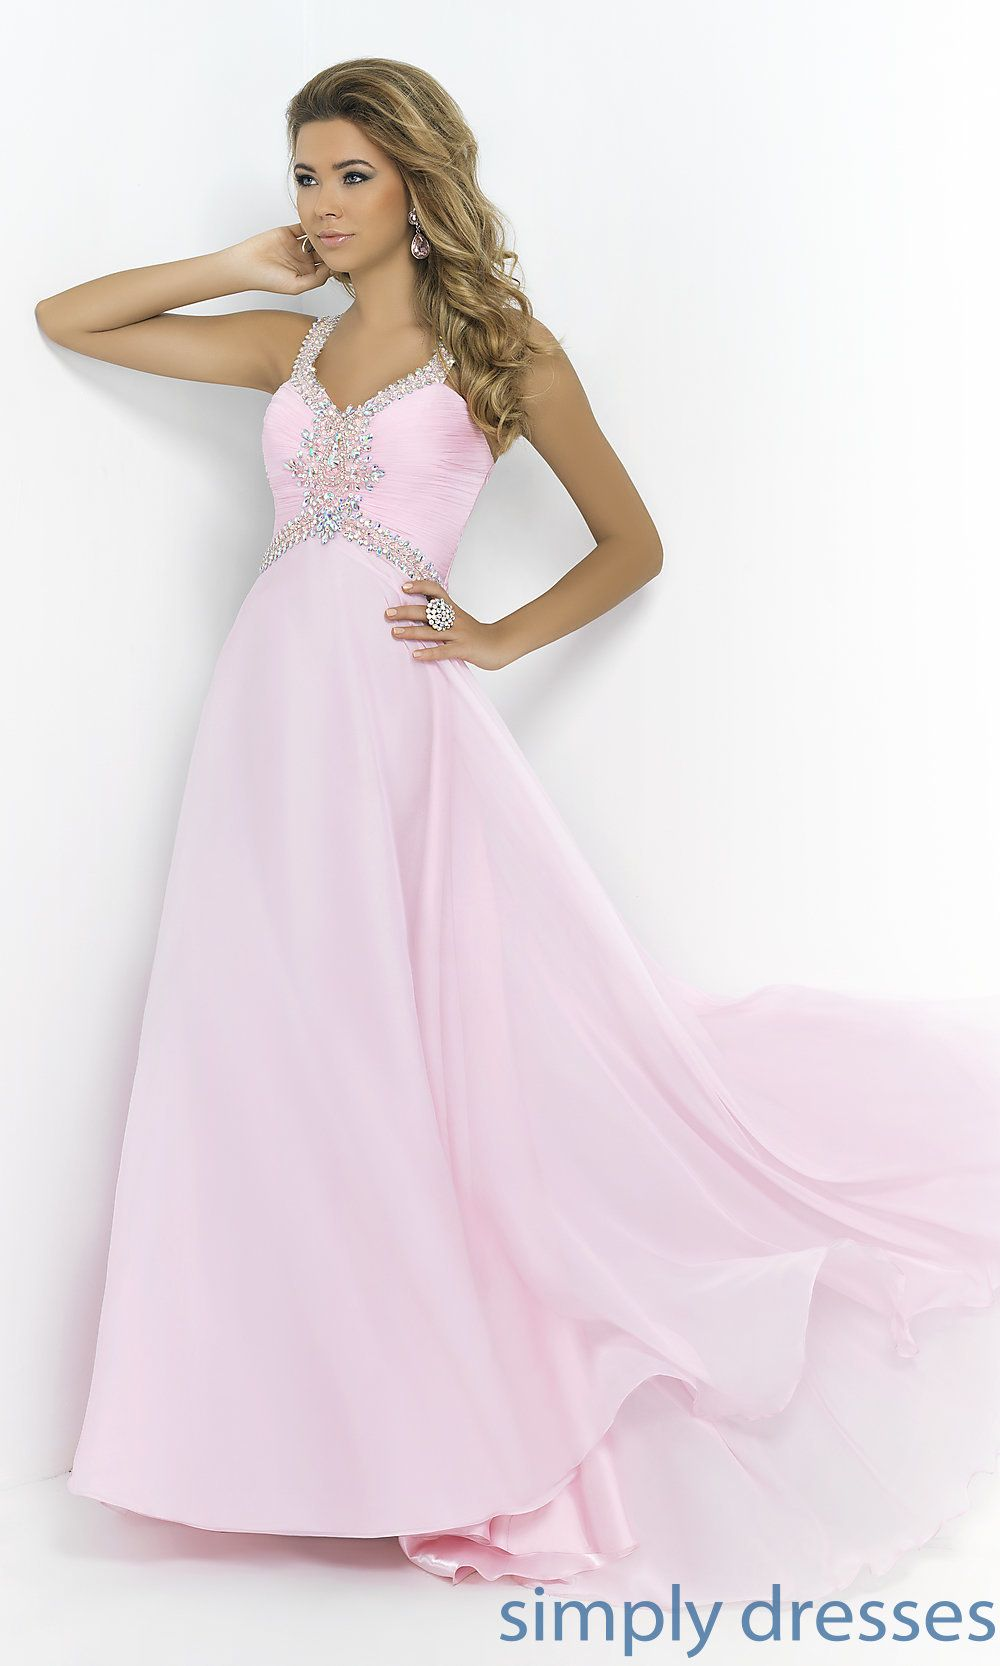 Beaded Prom Gown by Blush 9989, Pastel Prom Gown